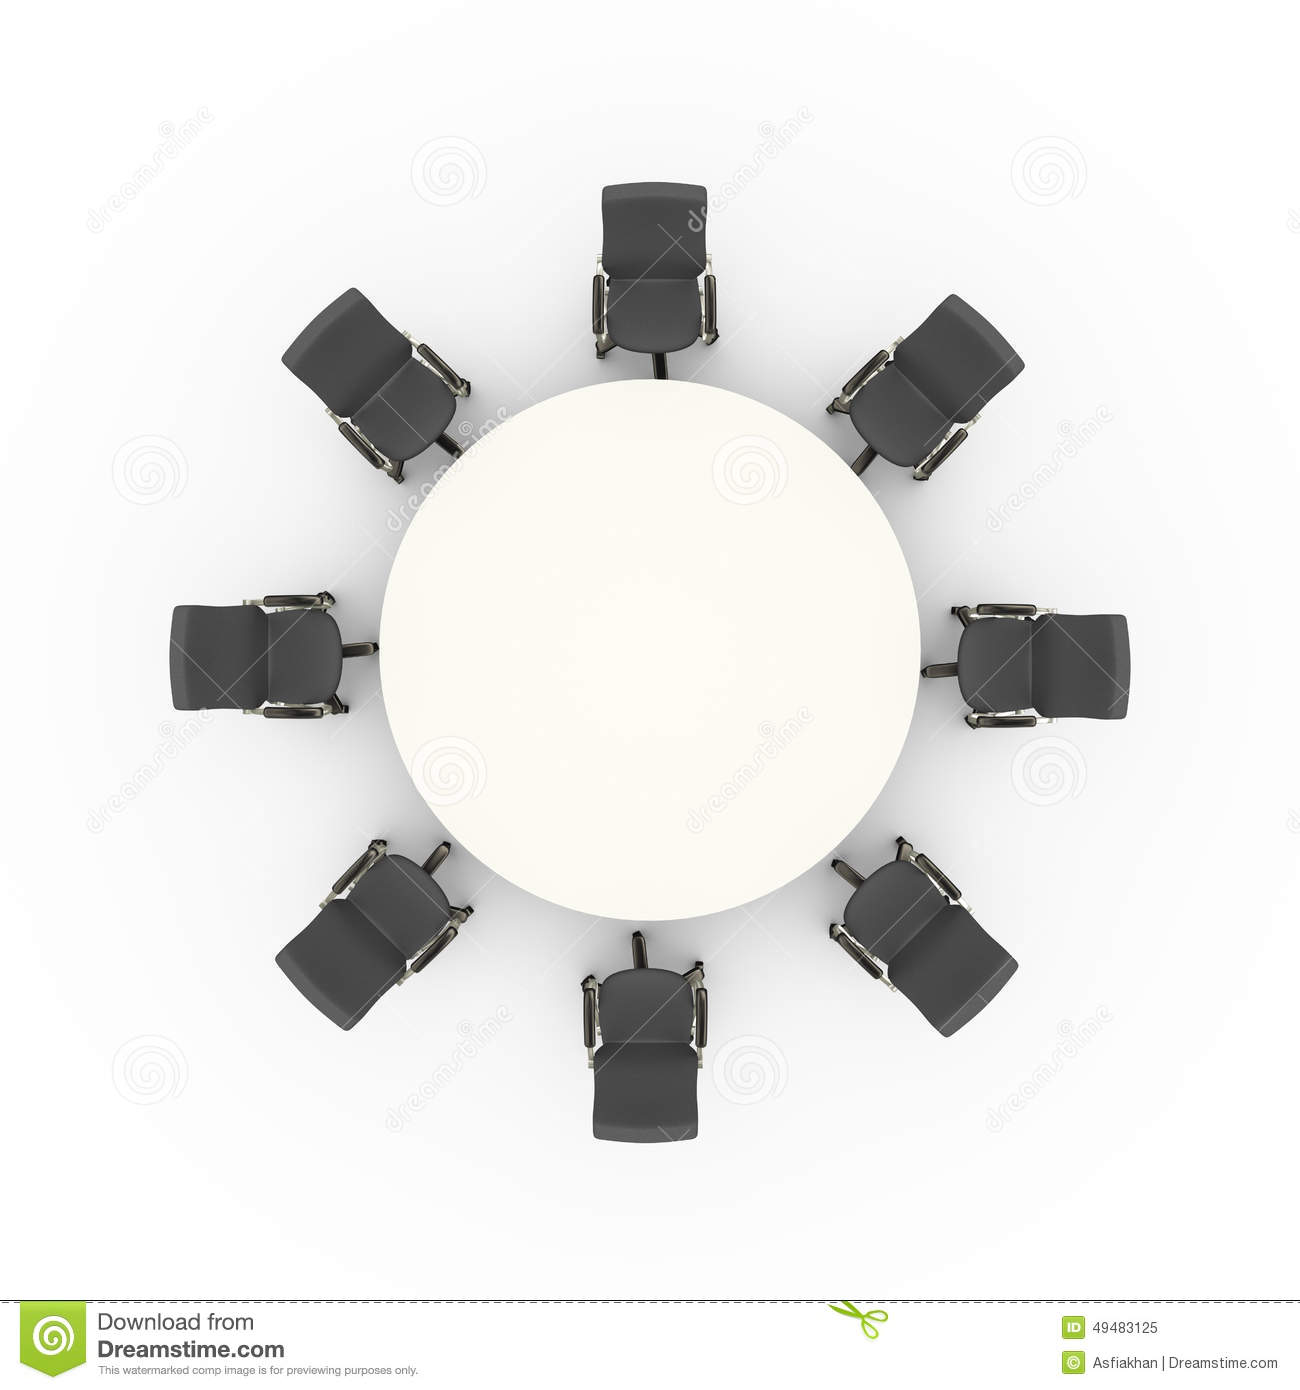 Top view of office chairs and business conference meeting round table